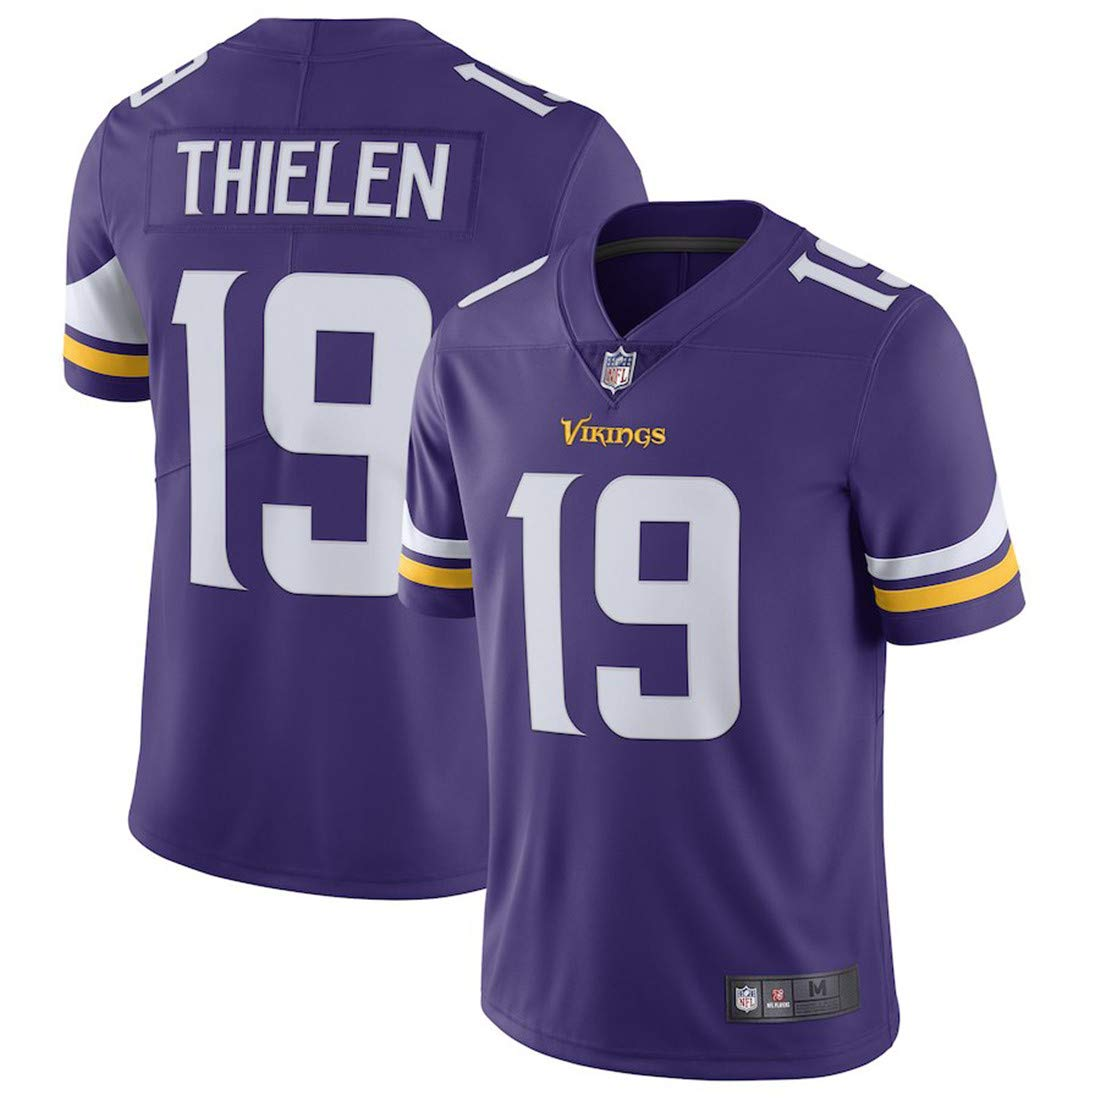 2f83f38c Outerstuff Men's Adam Thielen Minnesota Vikings Stitched Player Name &  Number Football Jersey - Purple